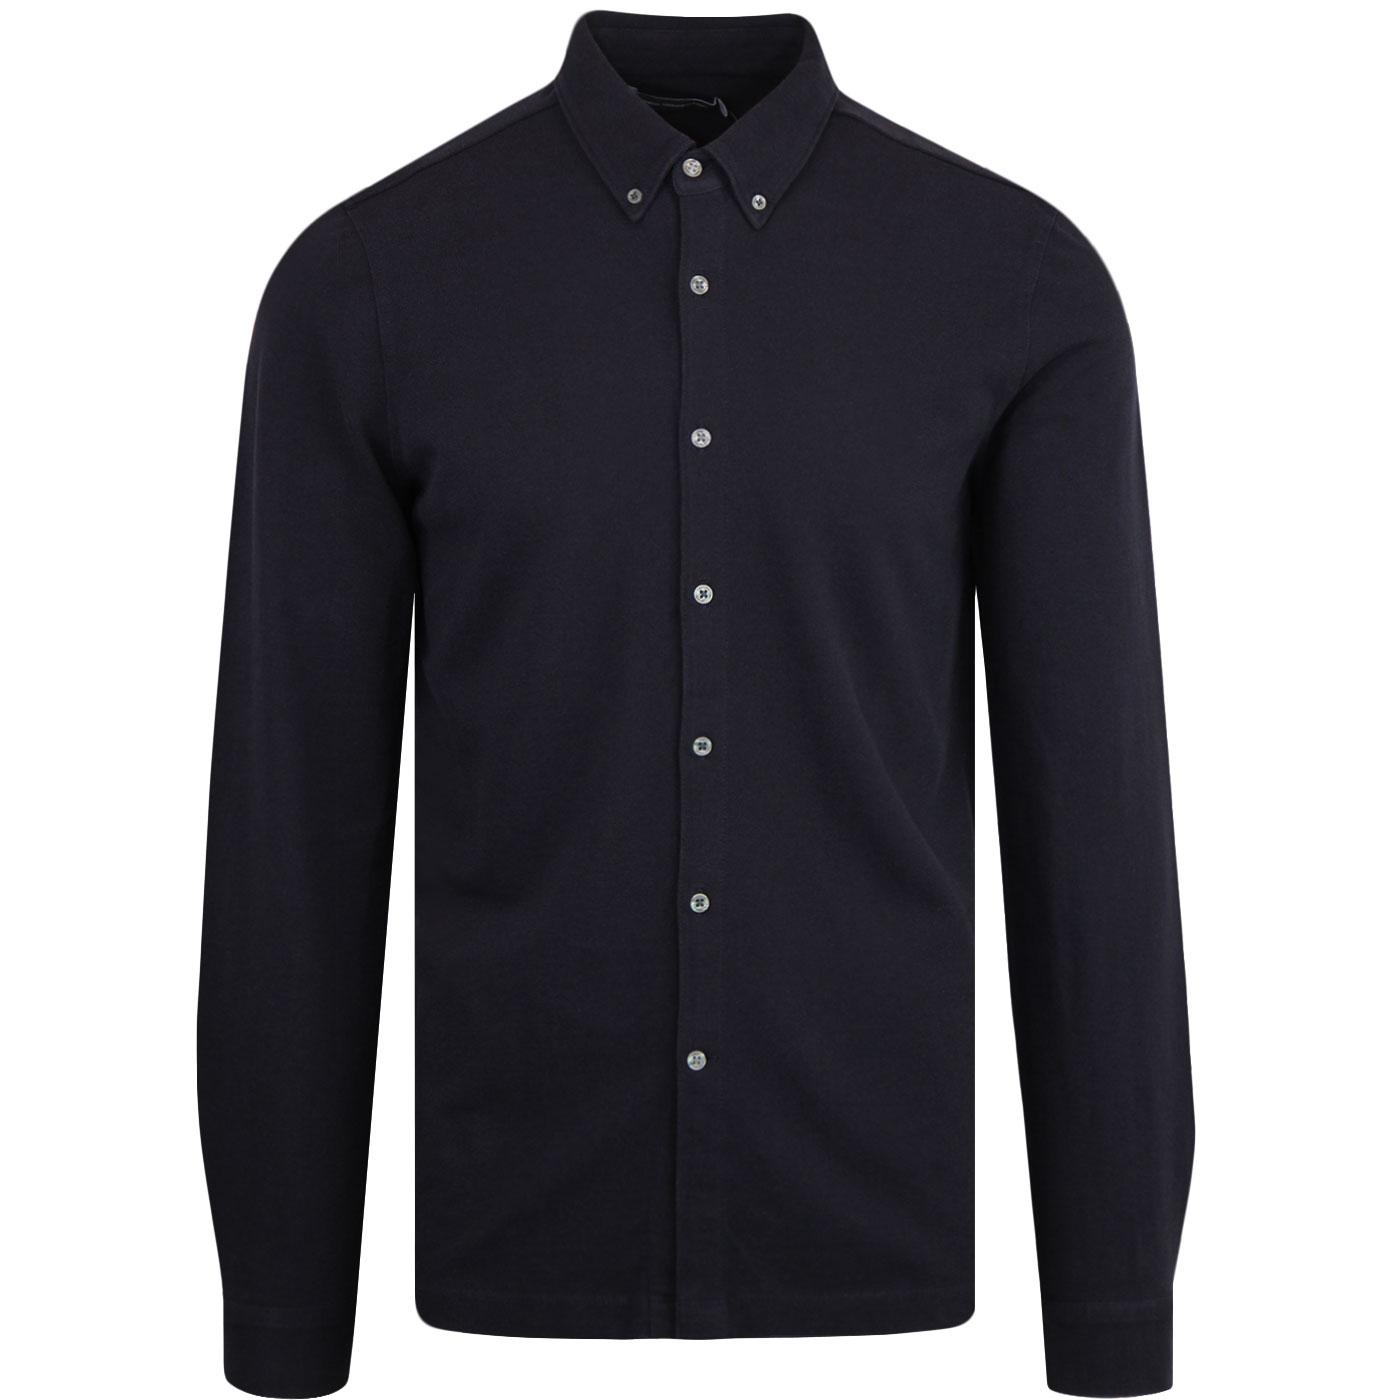 FRENCH CONNECTION L/S Pique Mod Shirt UTILITY BLUE